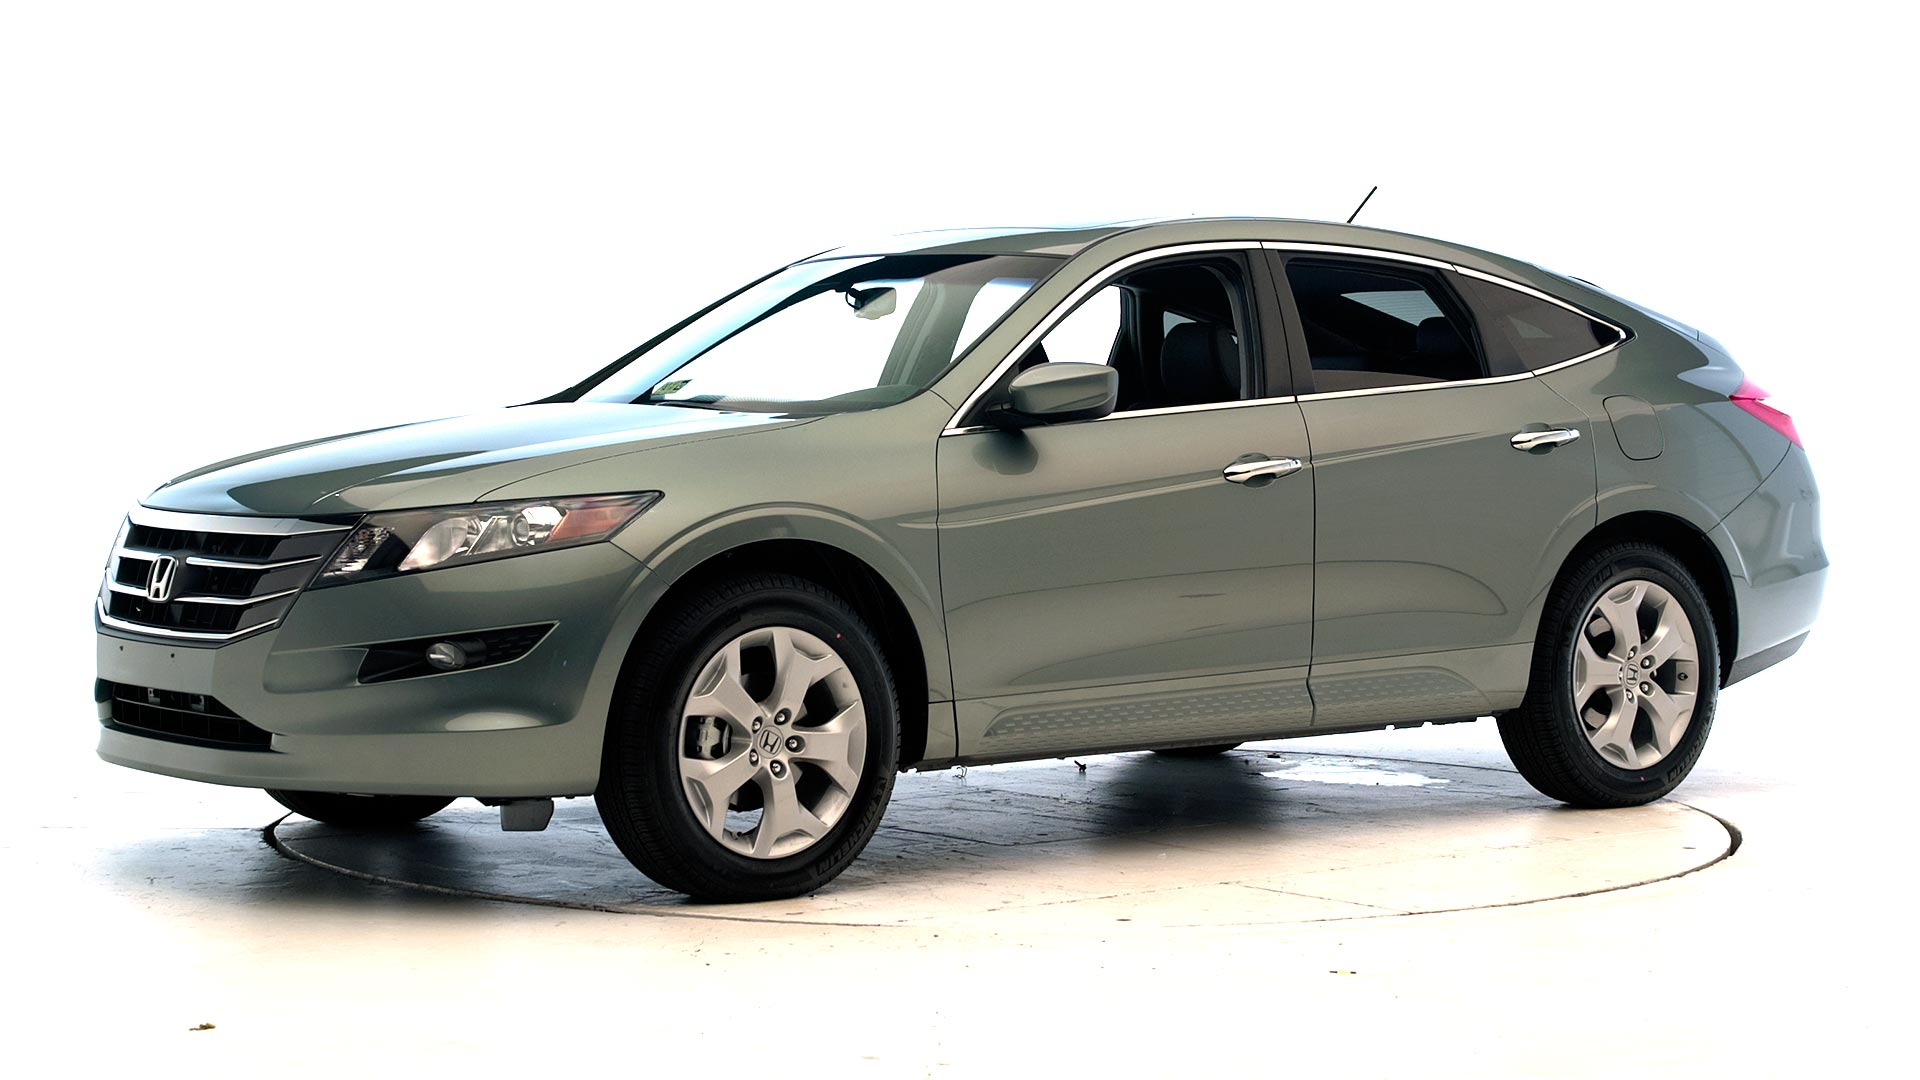 2010 Honda Crosstour 4-door SUV